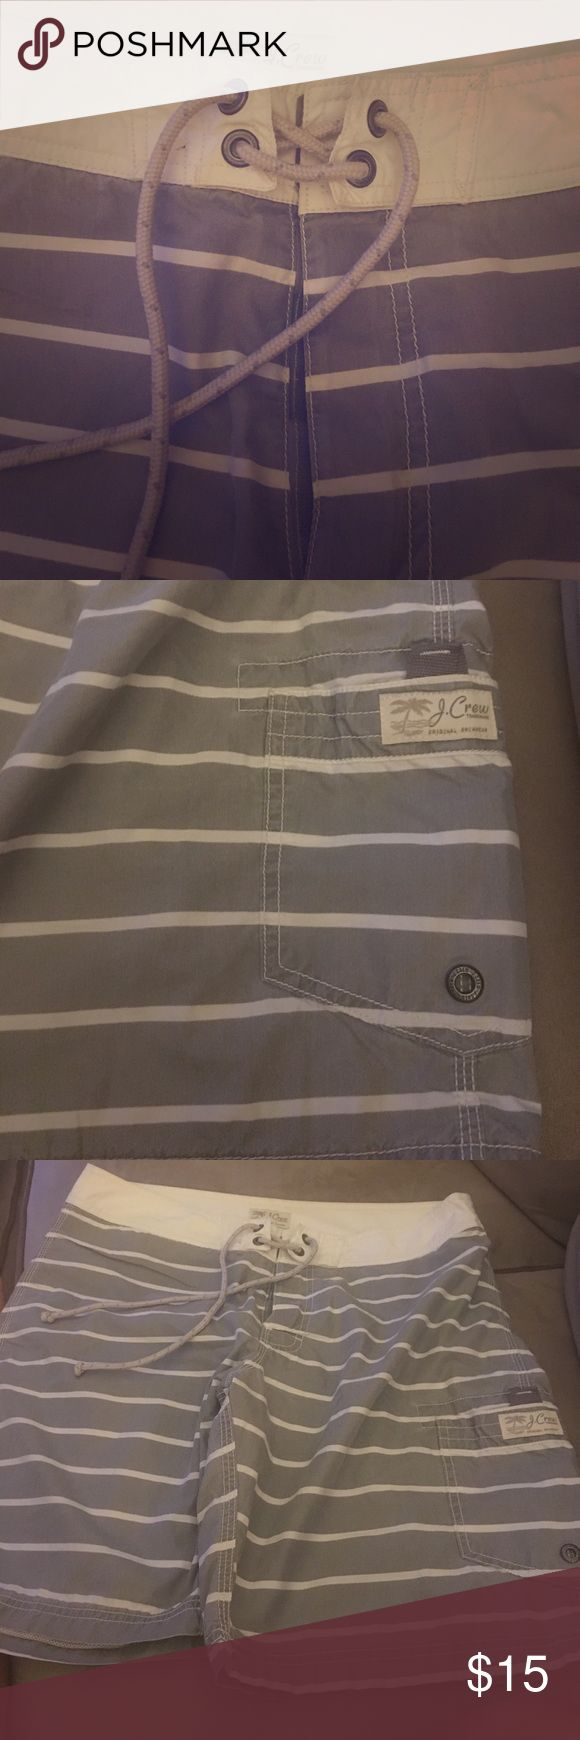 J. Crew: men's bathing suit size 33 in good used condition a few small spots by back pocket may come out with some elbow grease. velcro and tie closure. J. Crew Swim Swim Trunks